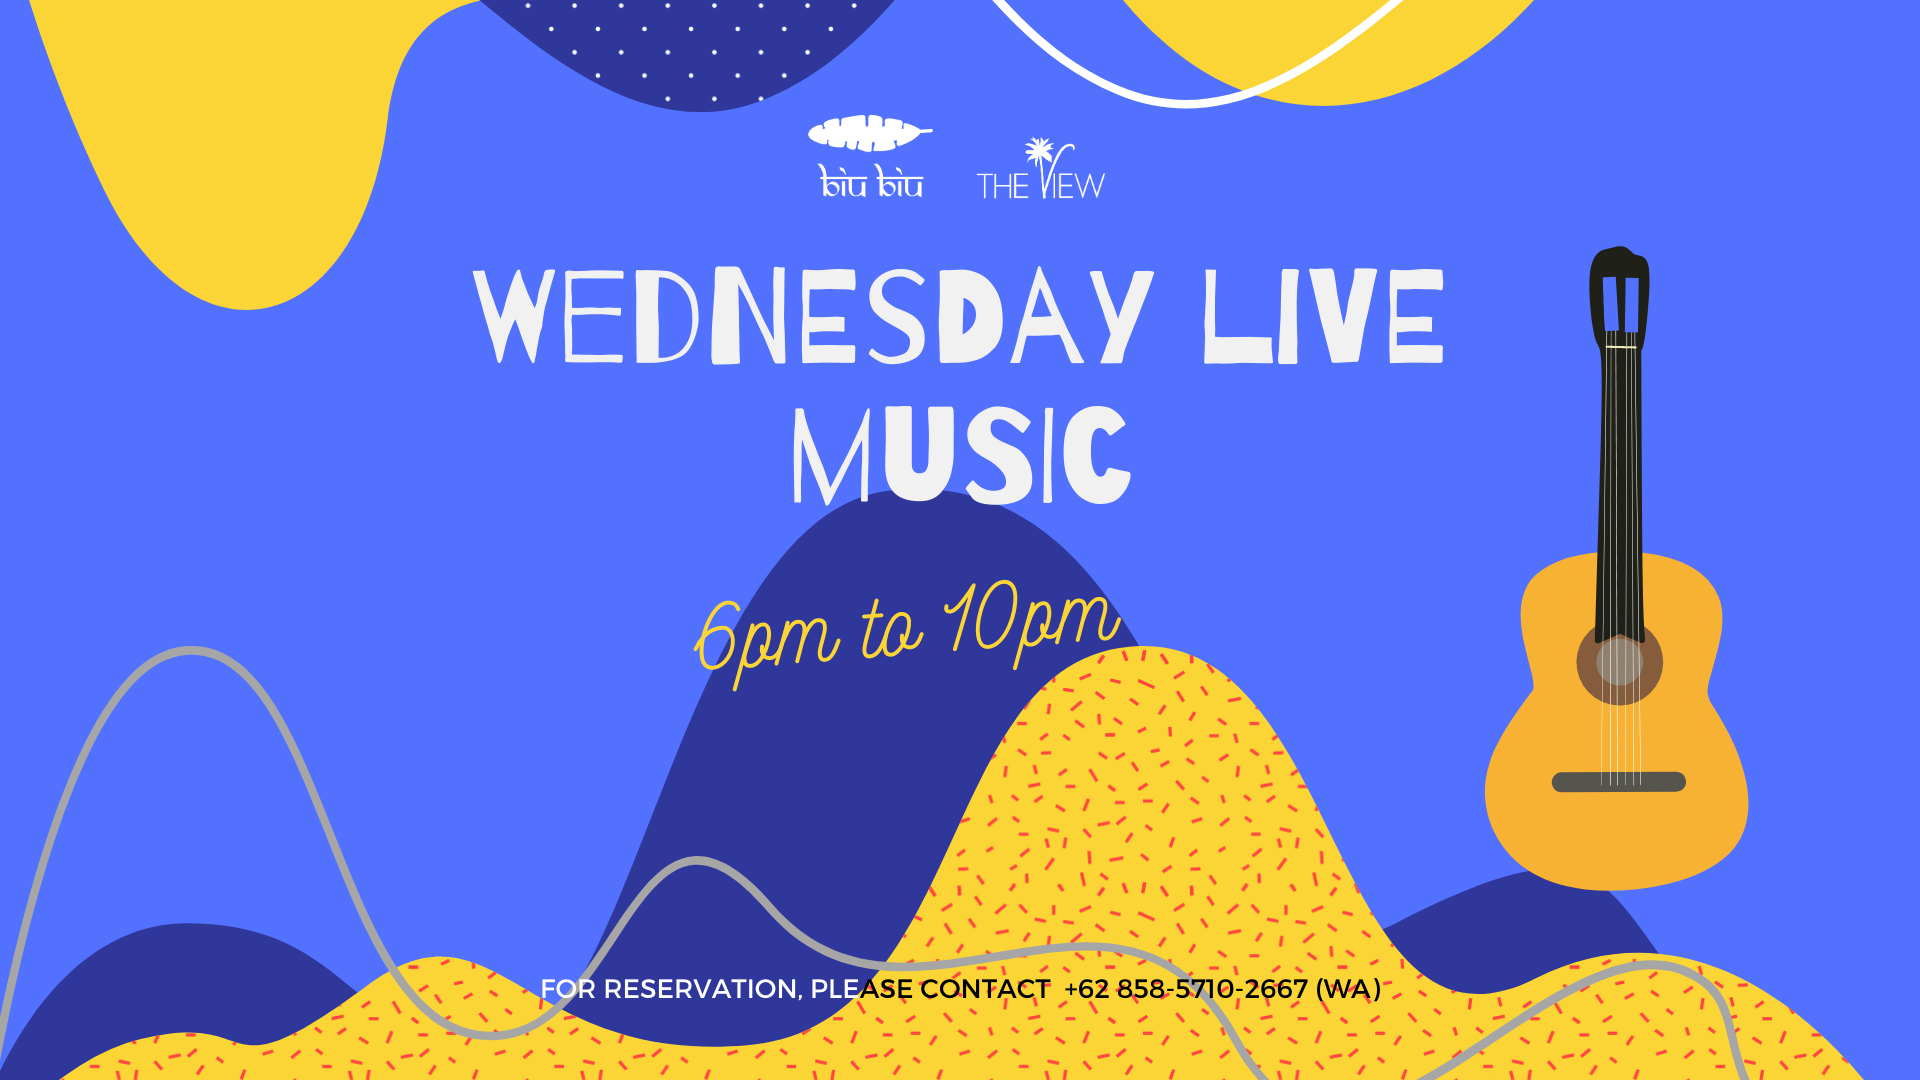 Wednesday live music